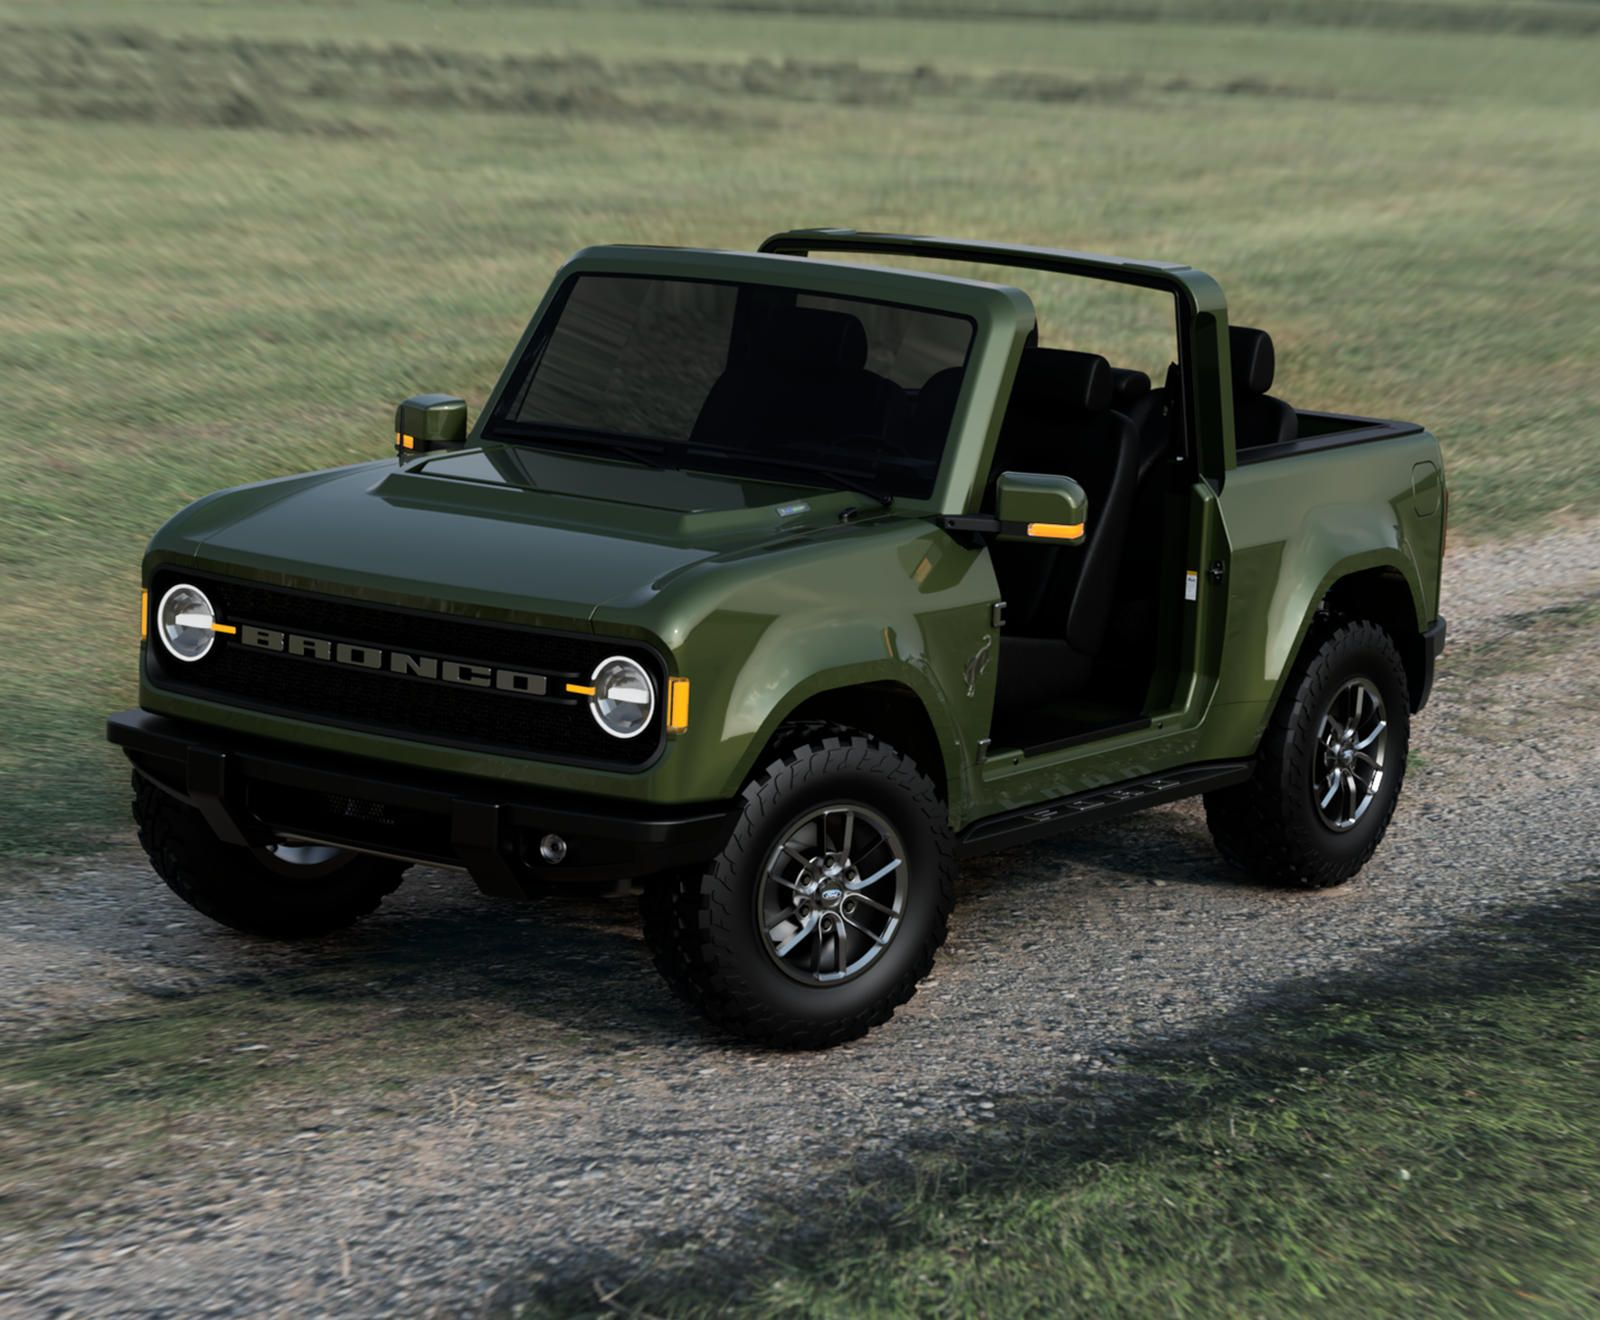 Best Look Yet At 2021 Ford Bronco In 2020 Ford Bronco Jeep Wrangler Pickup Truck Bronco